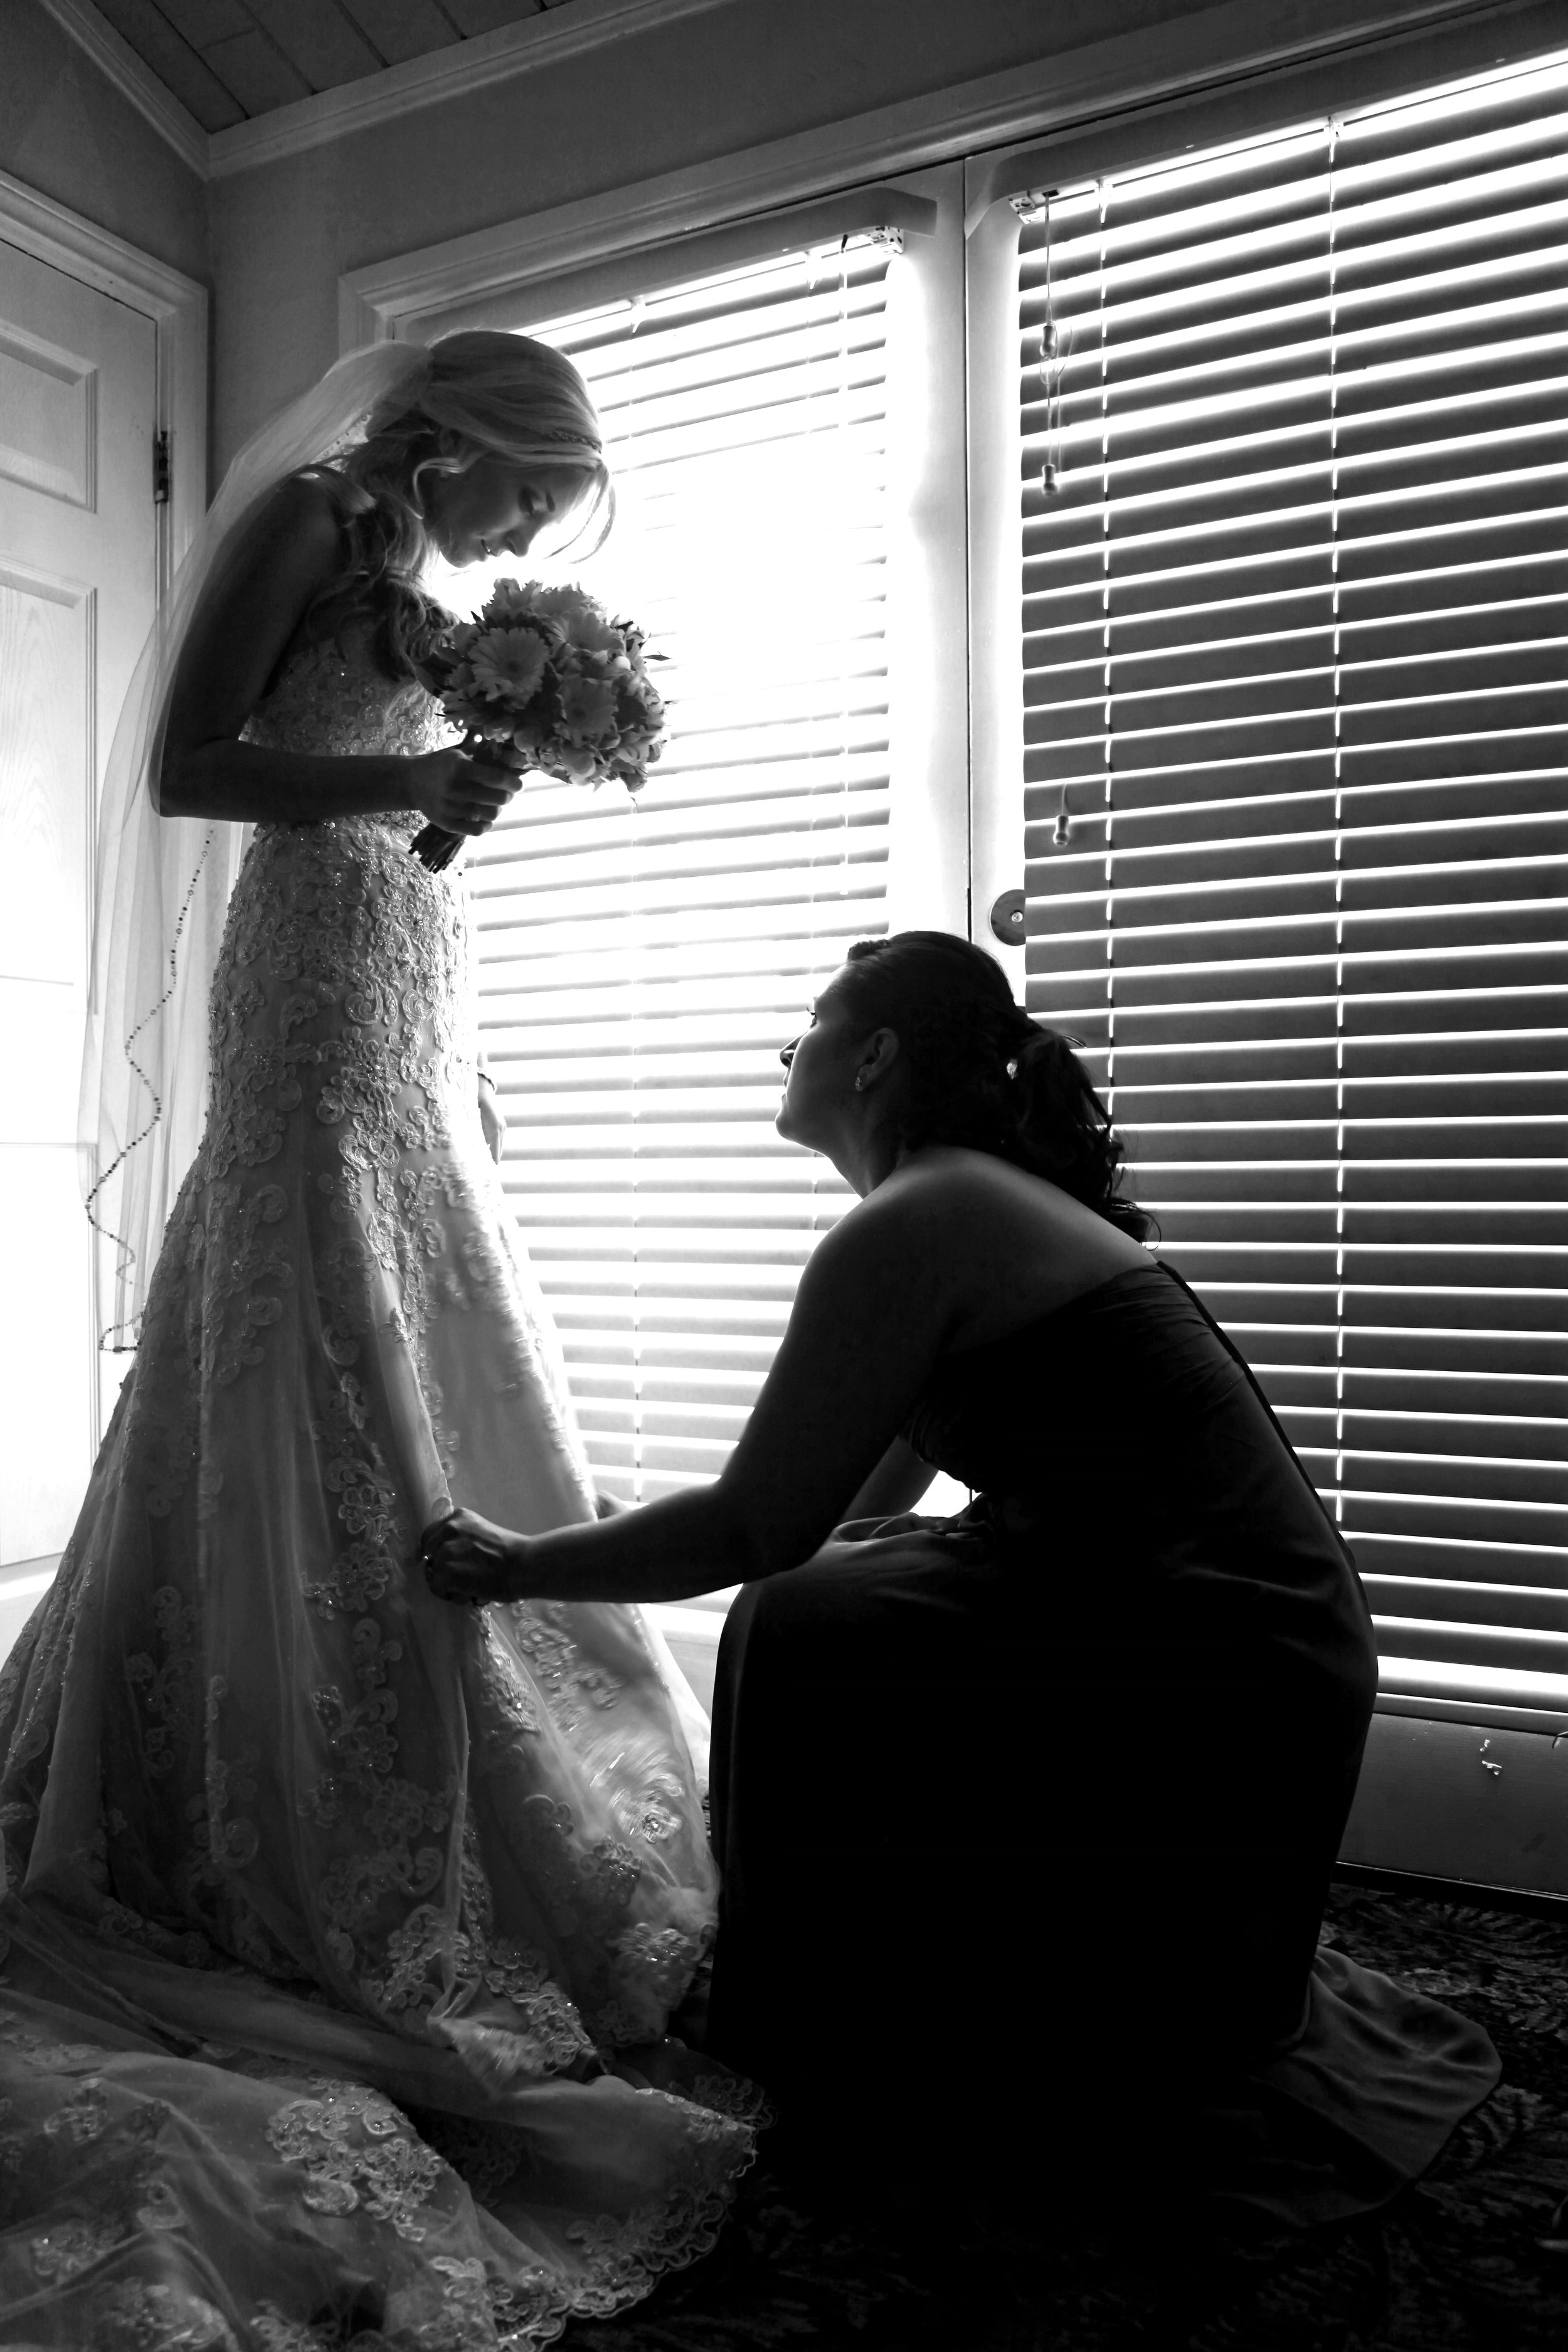 ShadowcatcherGalleryOne_SanDiegoWeddingPhotogrpaher_026.JPG